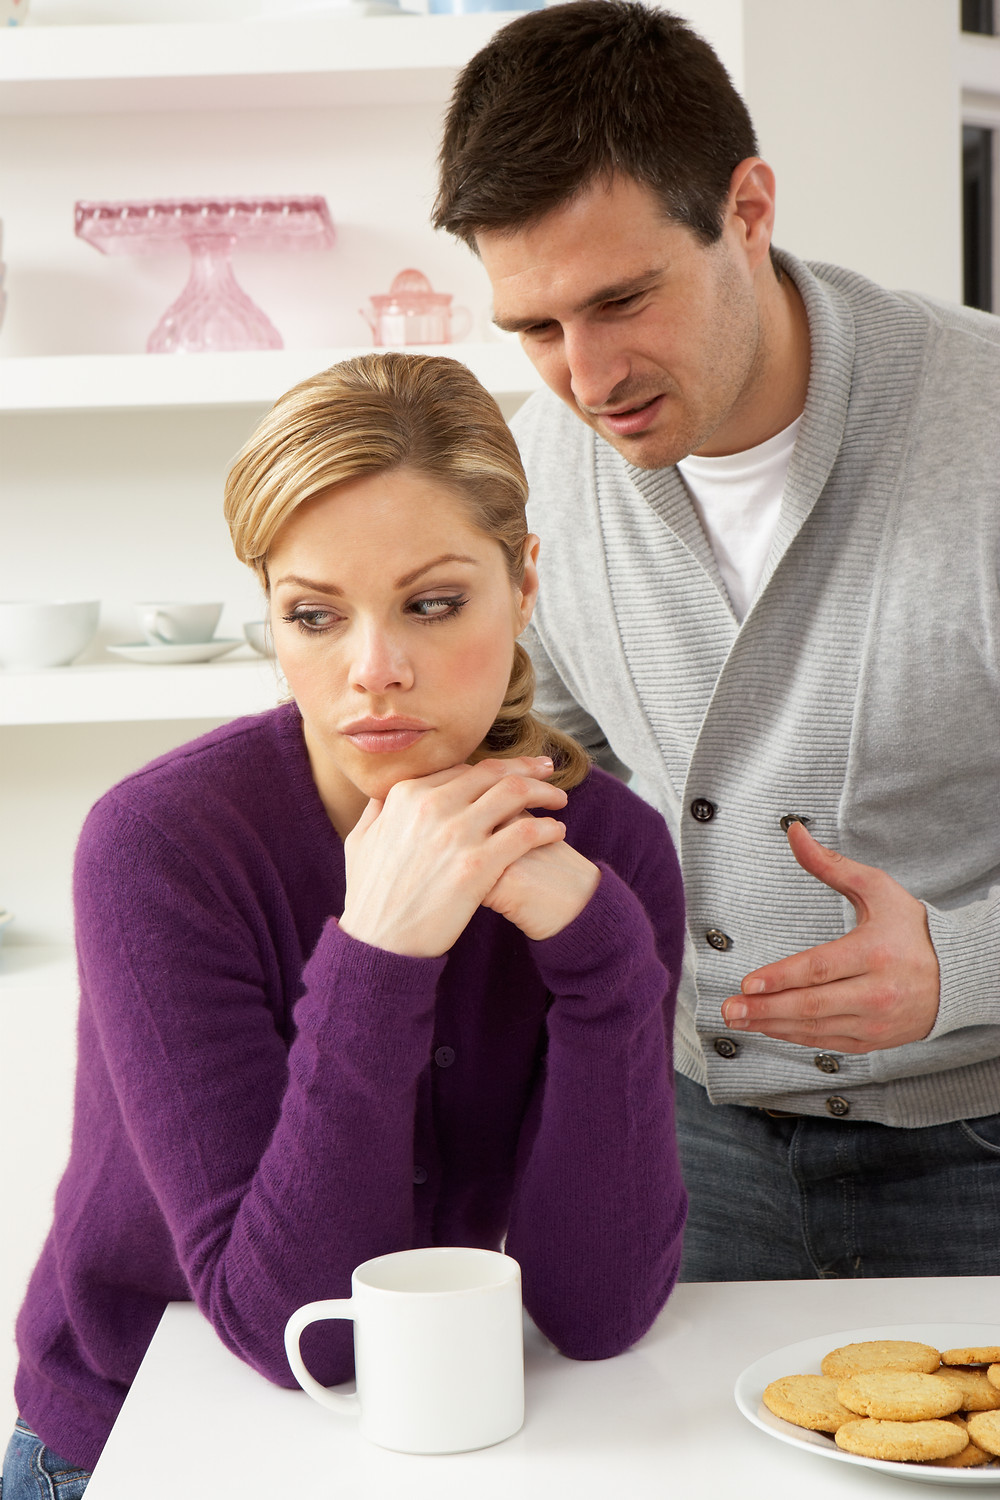 5 Signs Your Marriage Might Be Over by Konstantin Lukin, Ph.D., Bergen County Moms